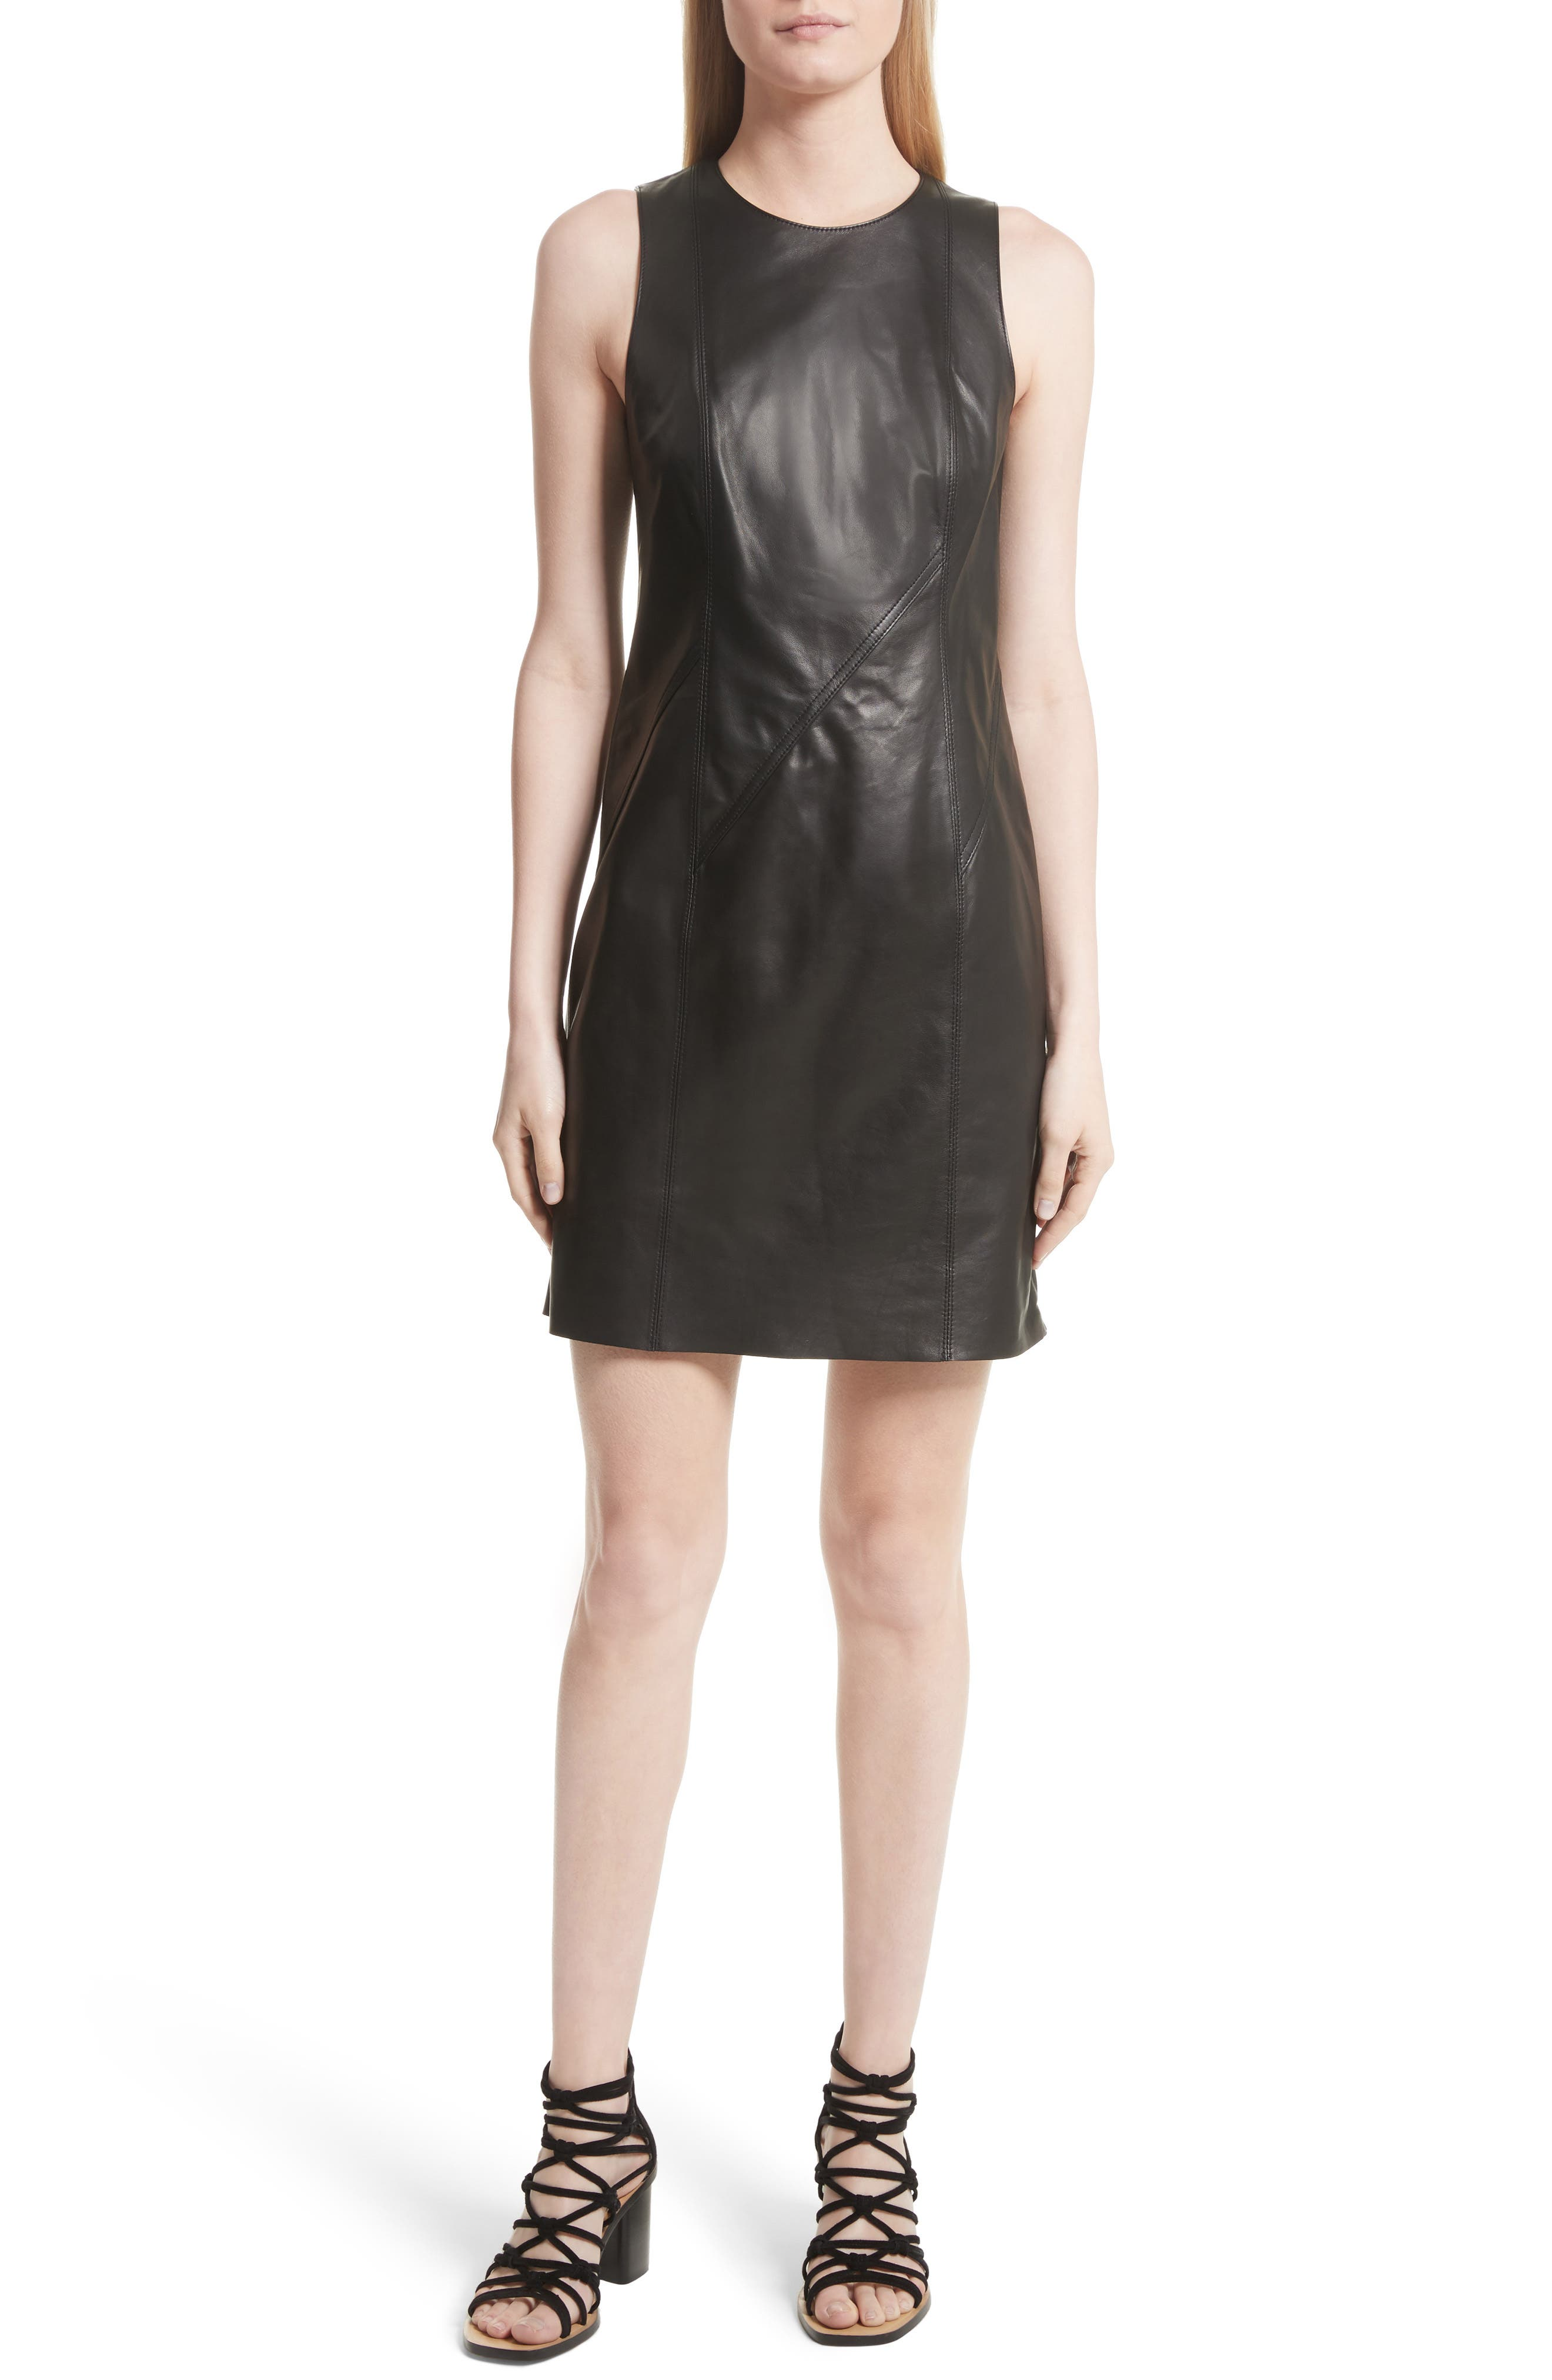 Loxley Leather Dress,                         Main,                         color, Black